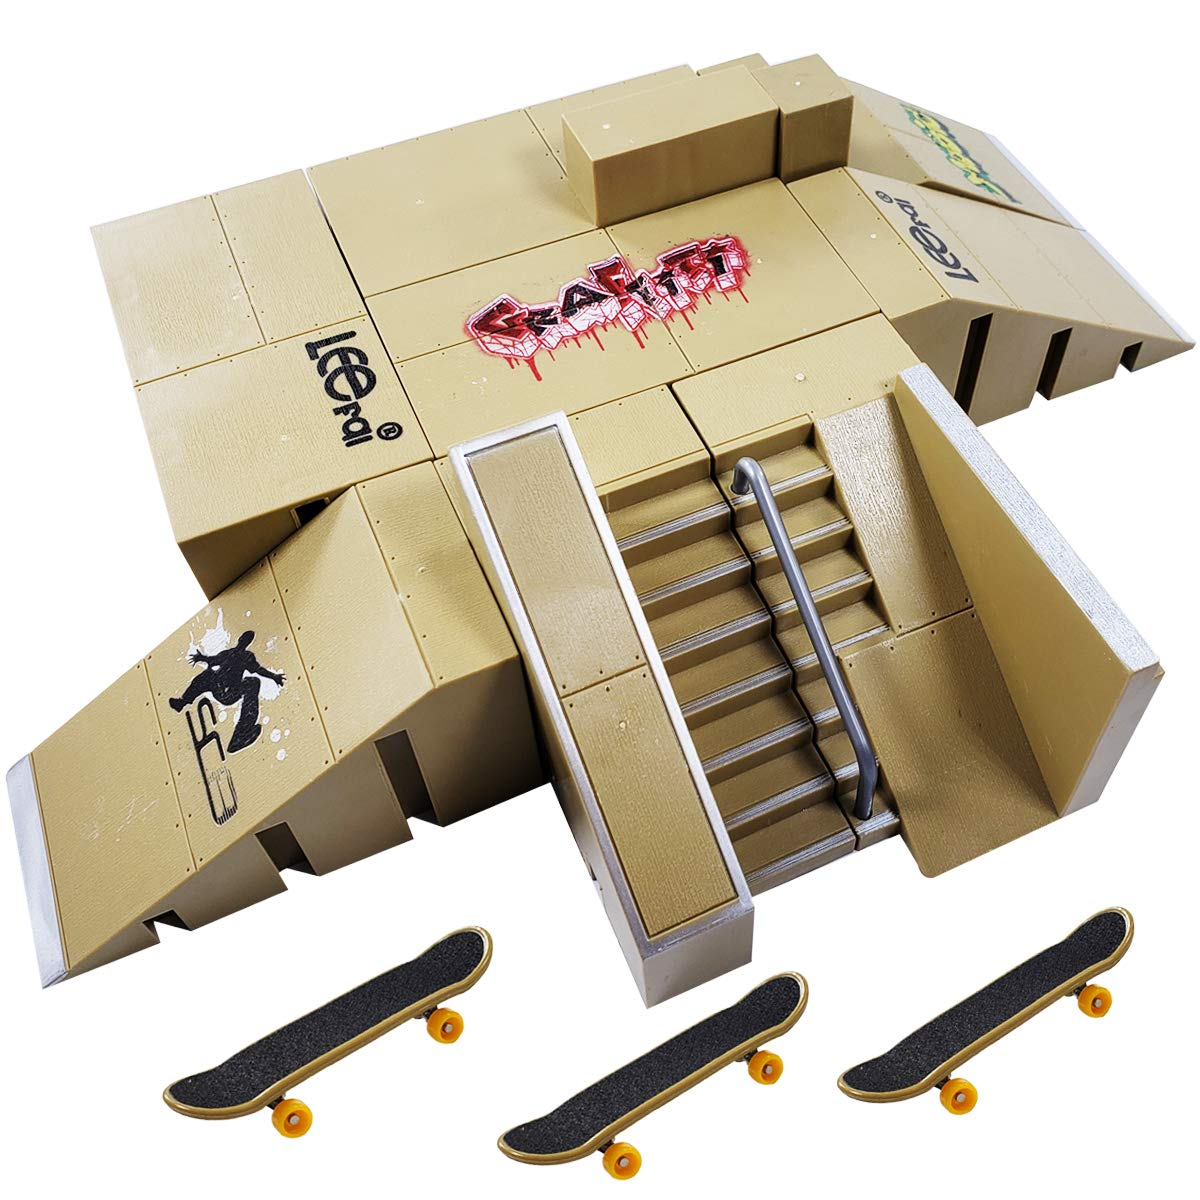 Ispeedytech 9pcs Professional Skate Park Kit Ramp for Mini Fingerboards Finger Skateboard by Ispeedytech (Image #1)